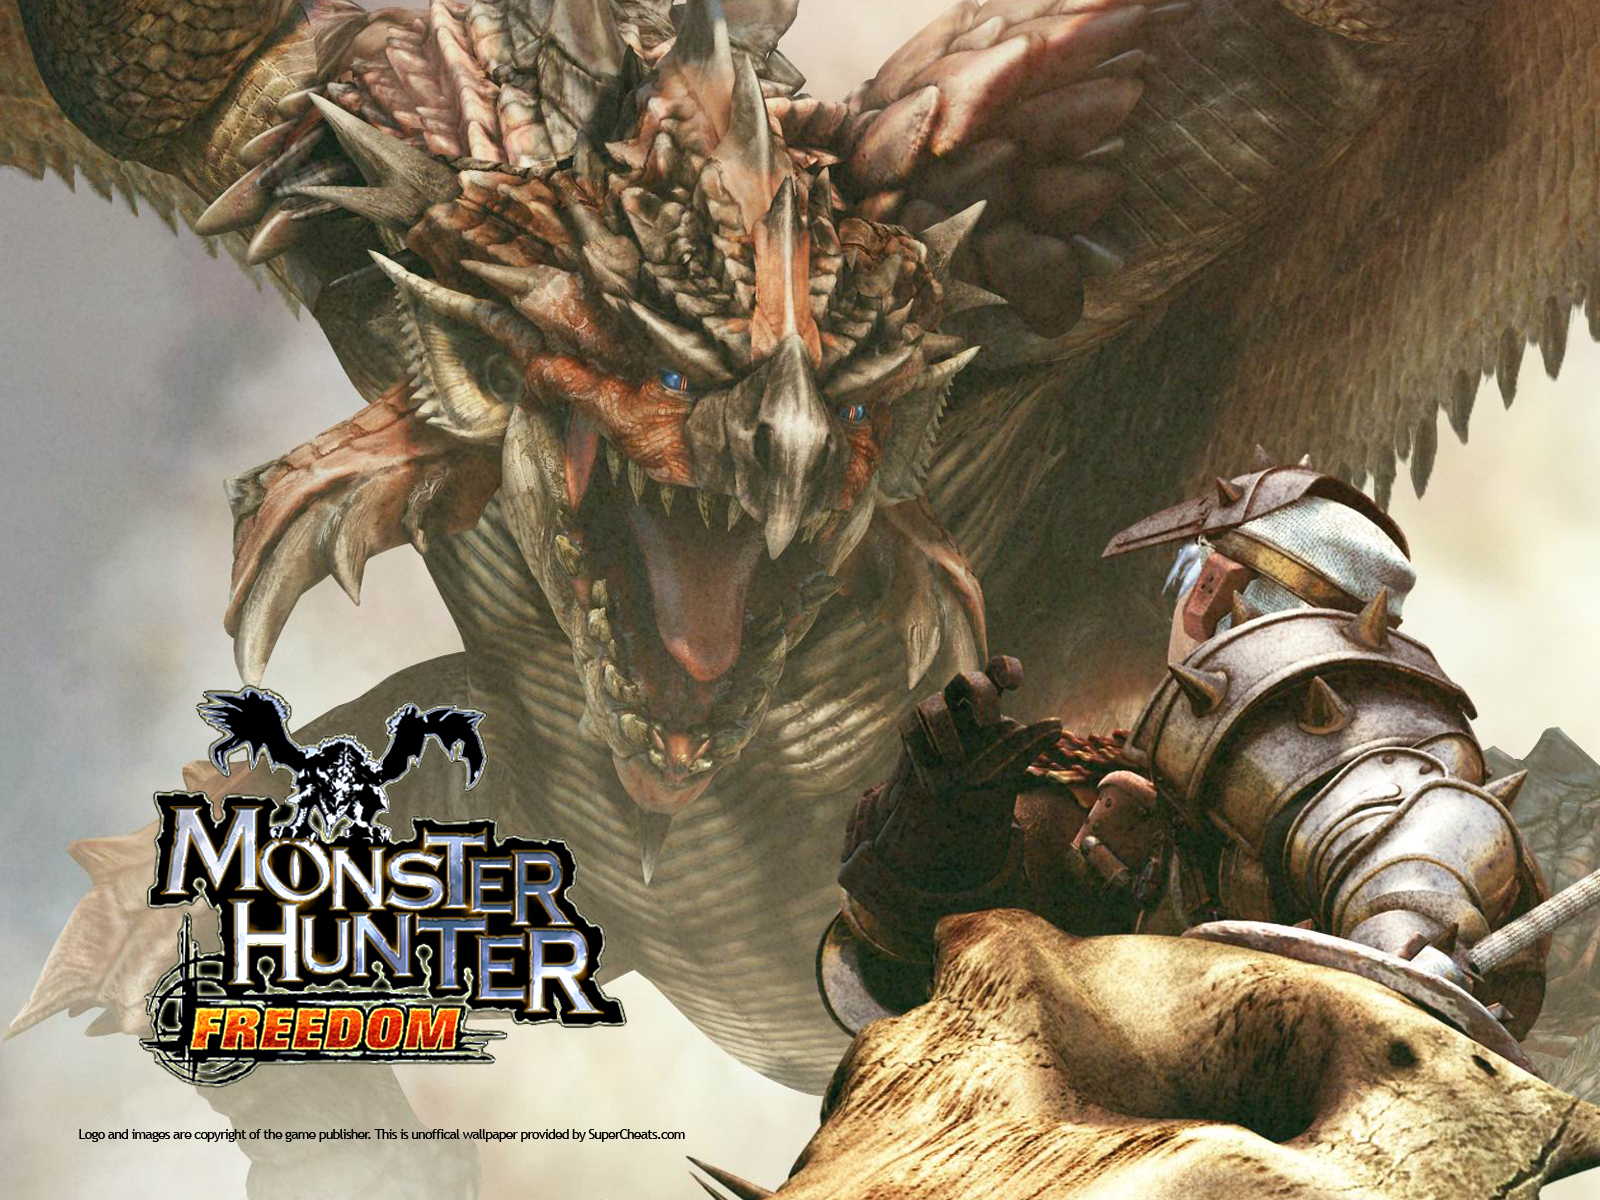 monster hunter Animals HD Wallpaper